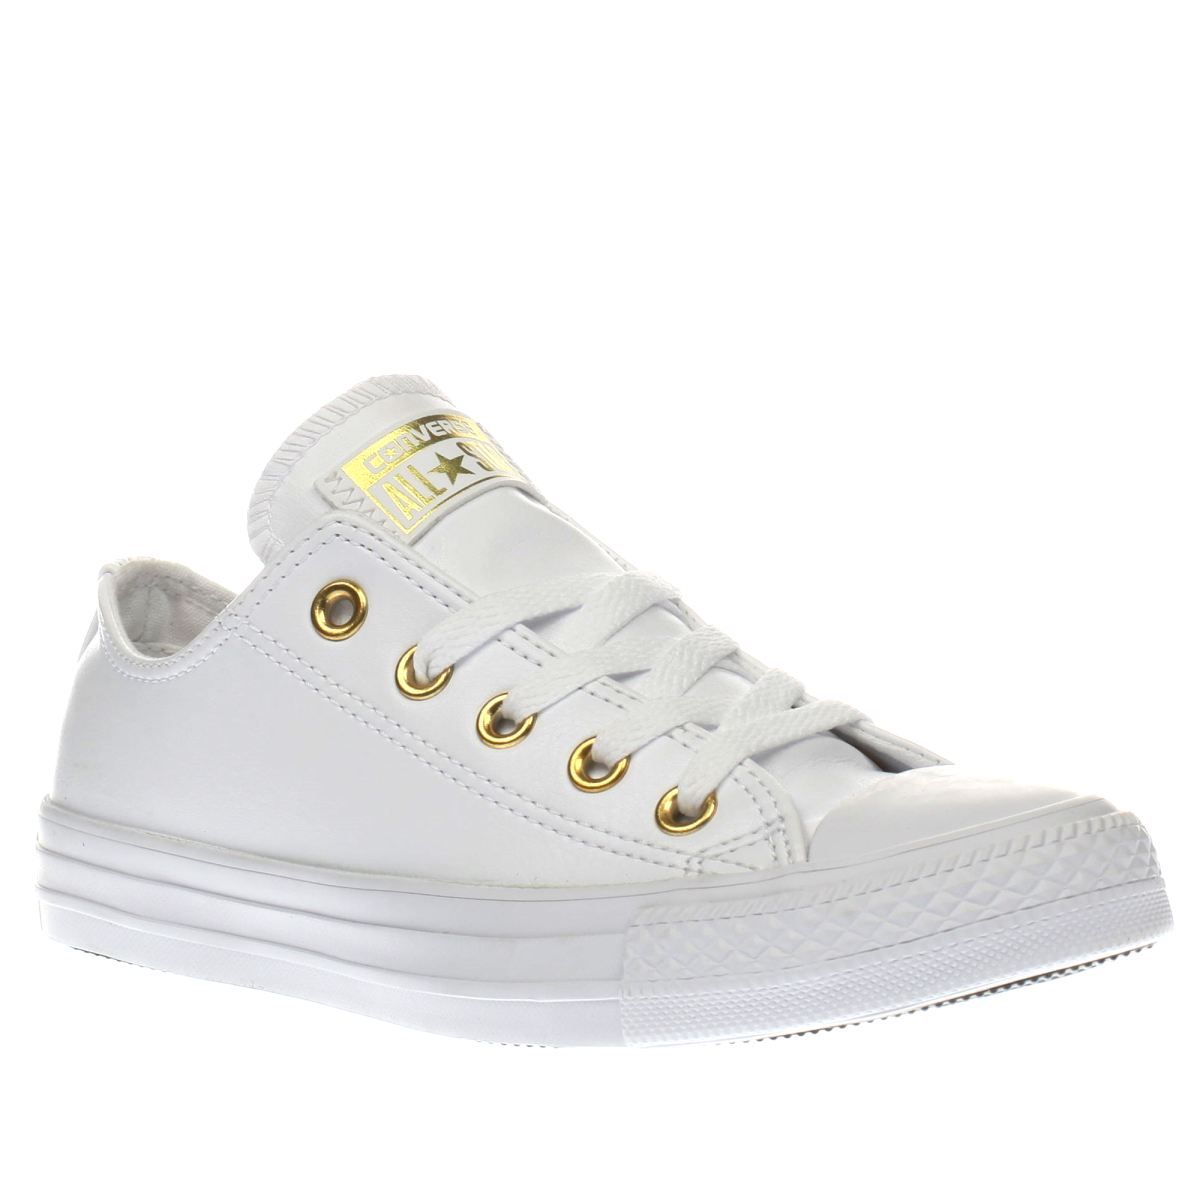 Favorite Basketball Schuhe Damen Converse All Star Bow